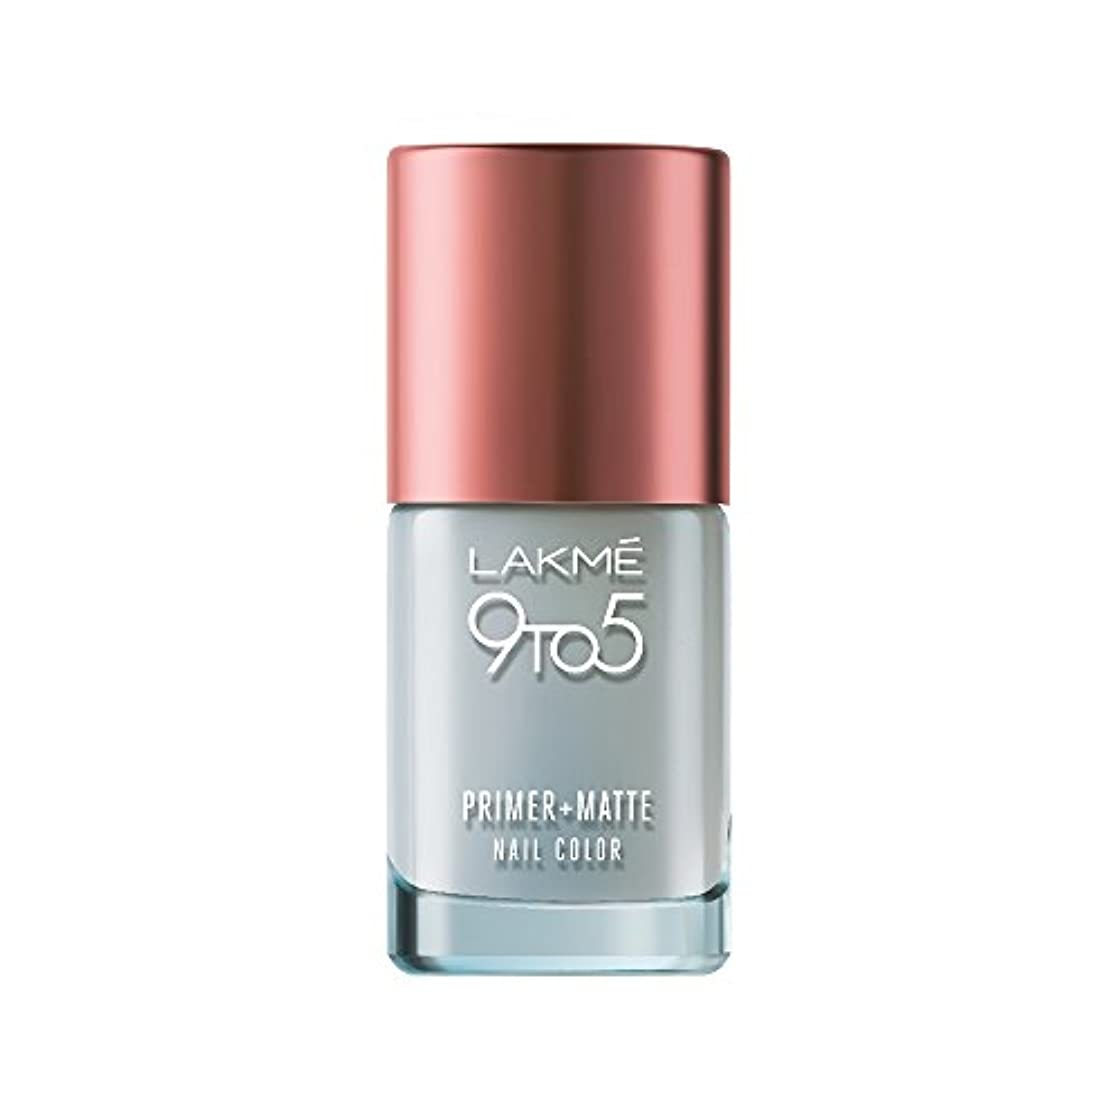 並外れてピーククーポンLakme 9 to 5 Primer and Matte Nail Topcoat, Clear, 9ml